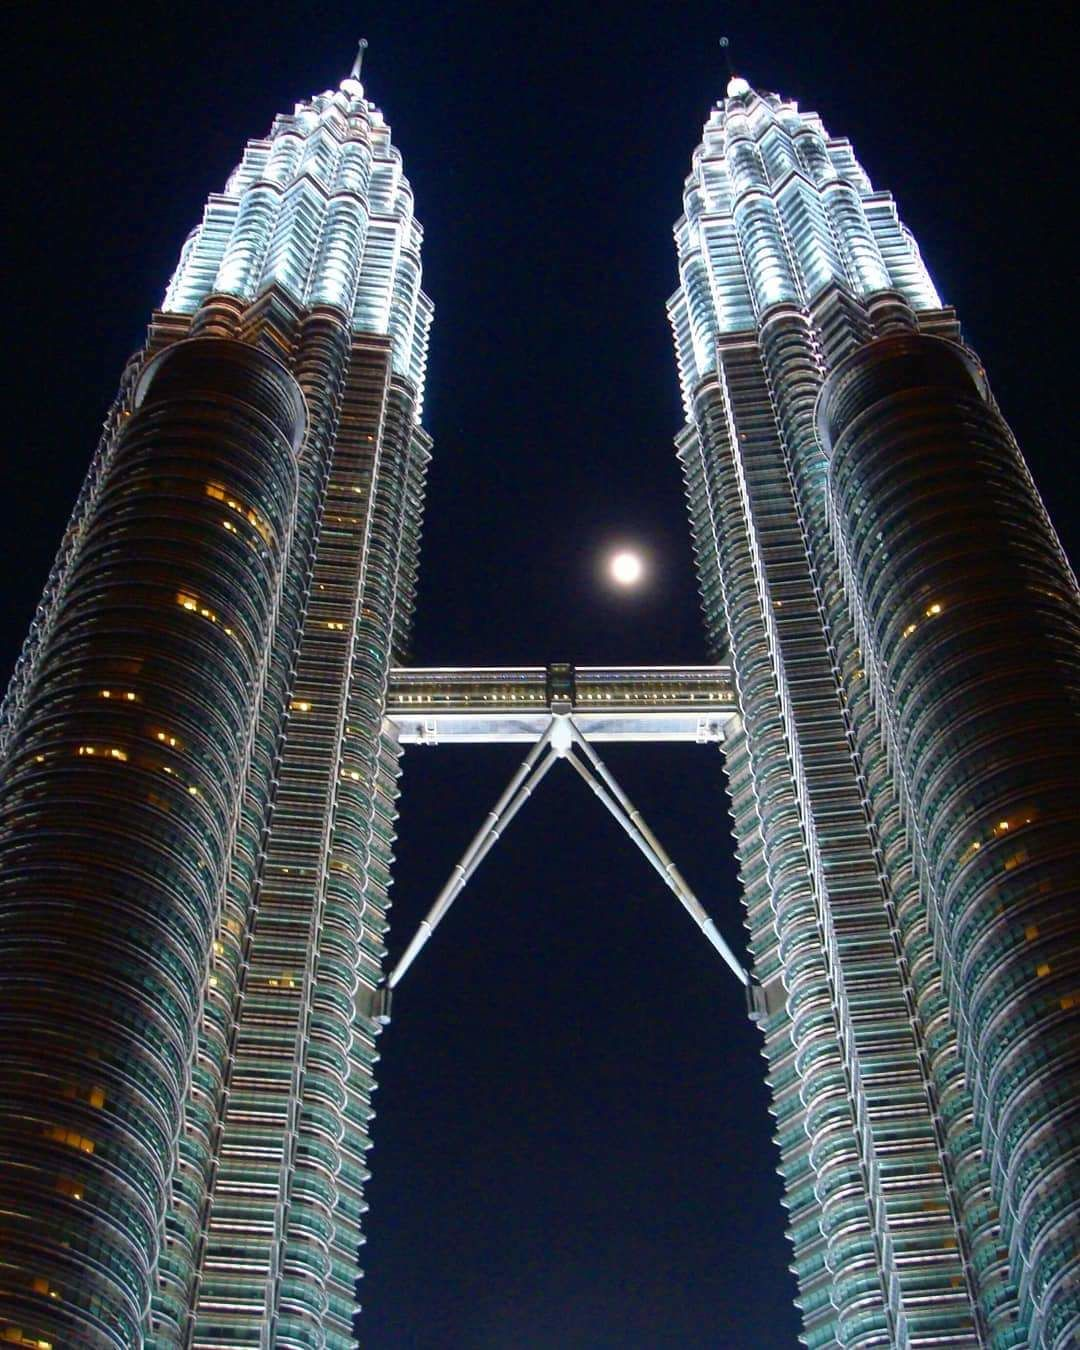 Photo of Malaysia By Khushboo